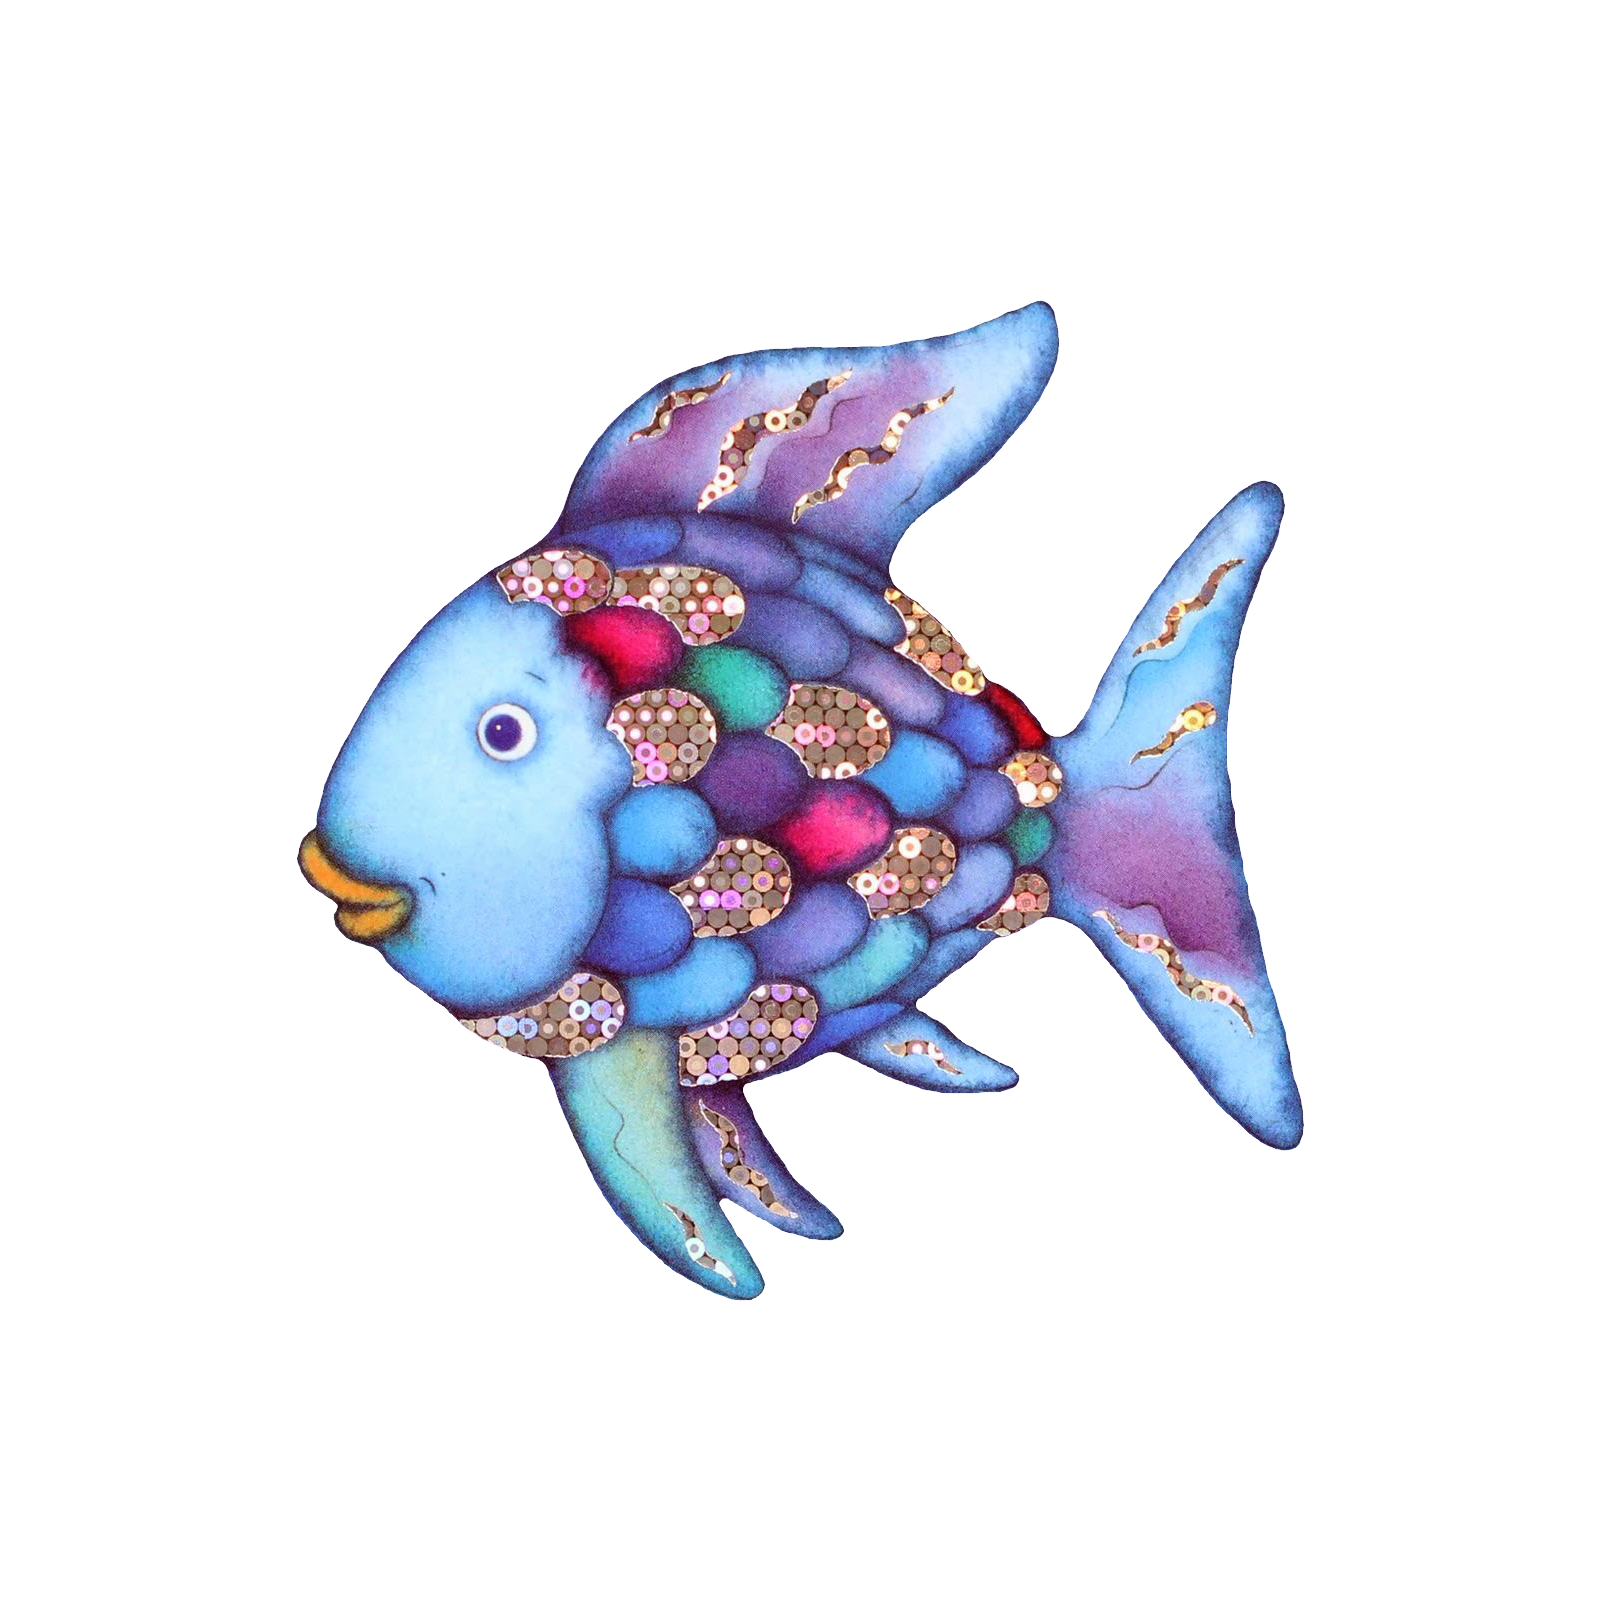 Rainbow Fish Images Clipart.